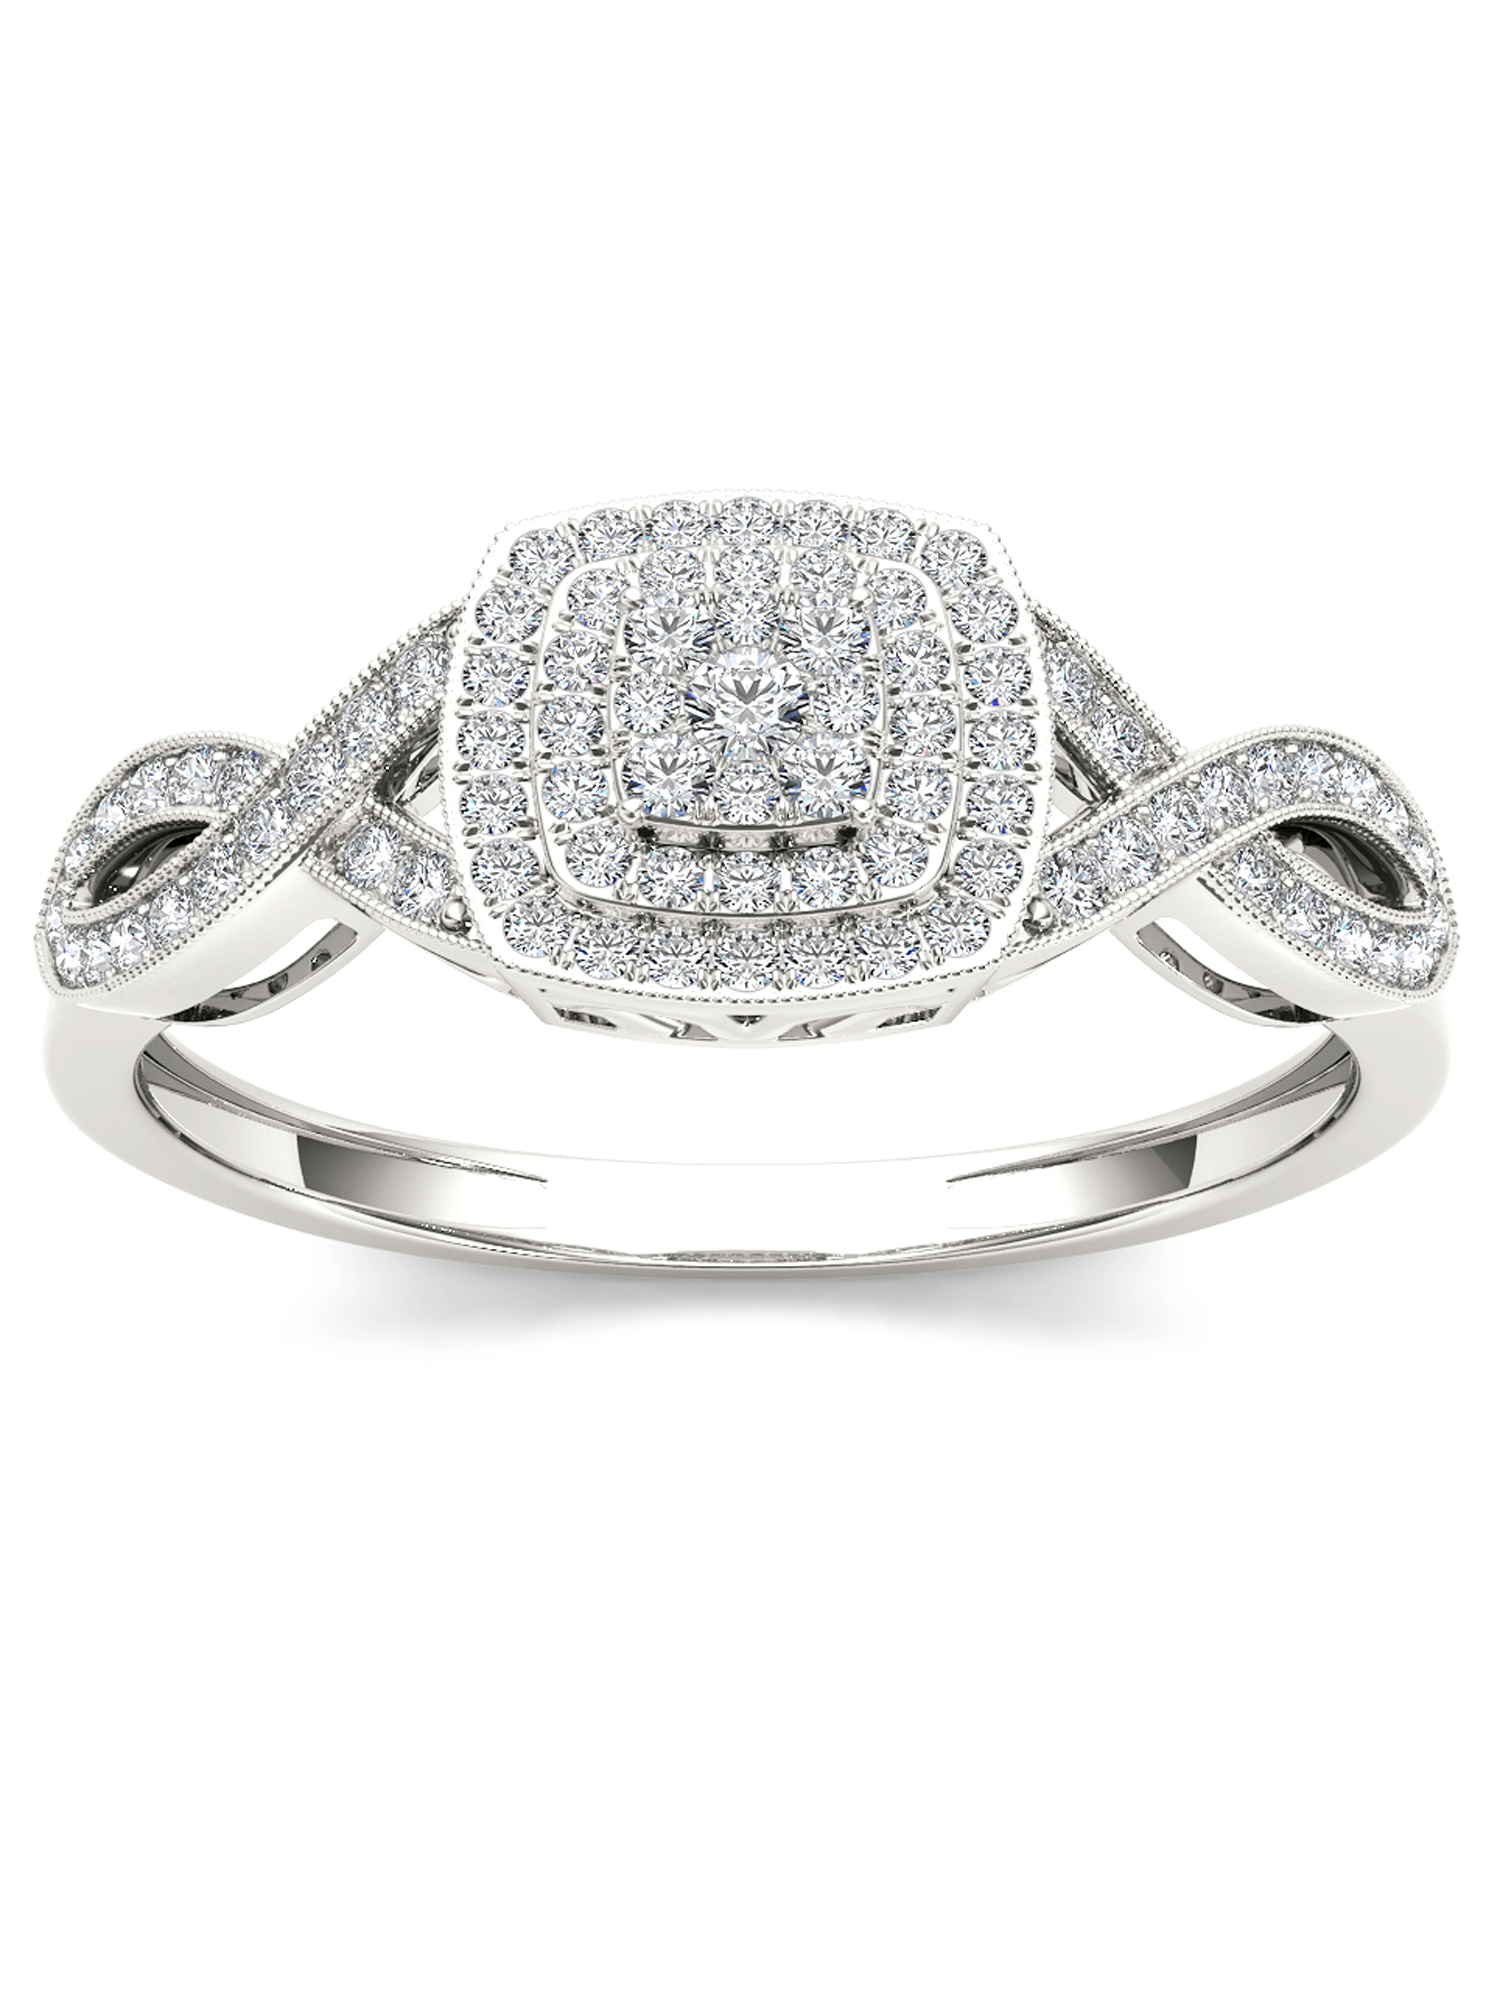 Imperial 1/4Ct TDW Diamond 10K White Gold Criss-Cross Engagement Ring